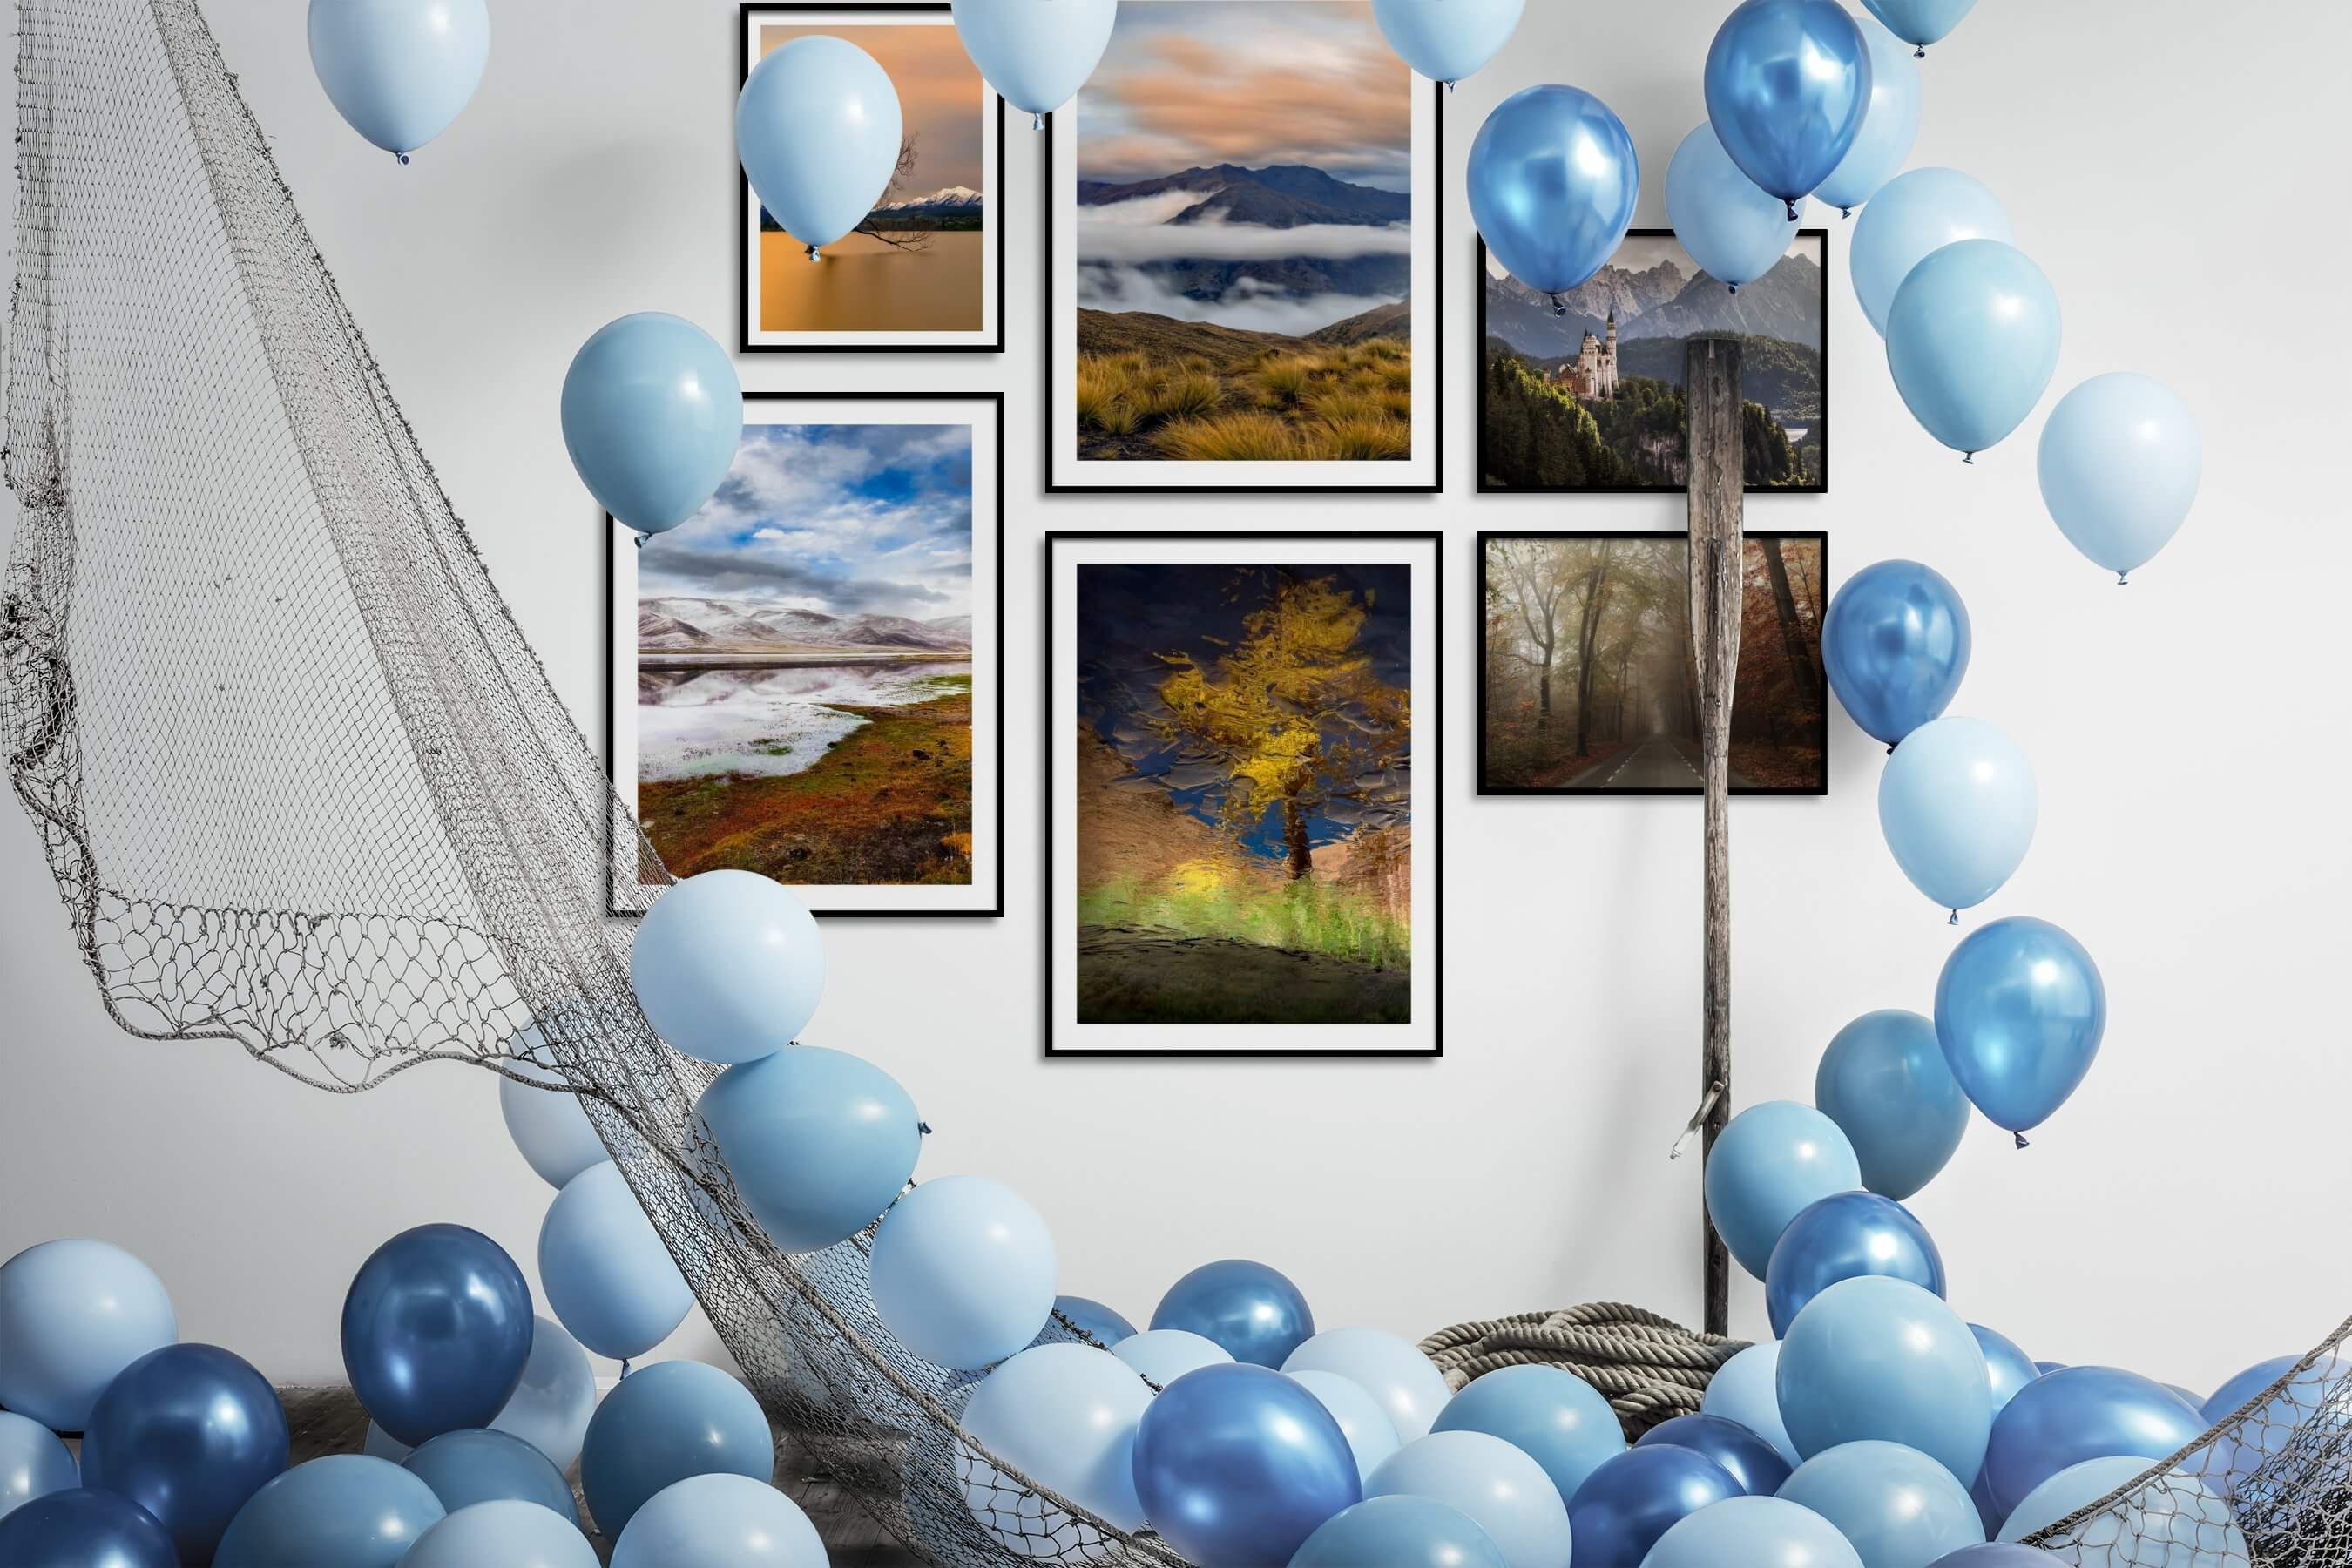 Gallery wall idea with six framed pictures arranged on a wall depicting Nature and Mindfulness